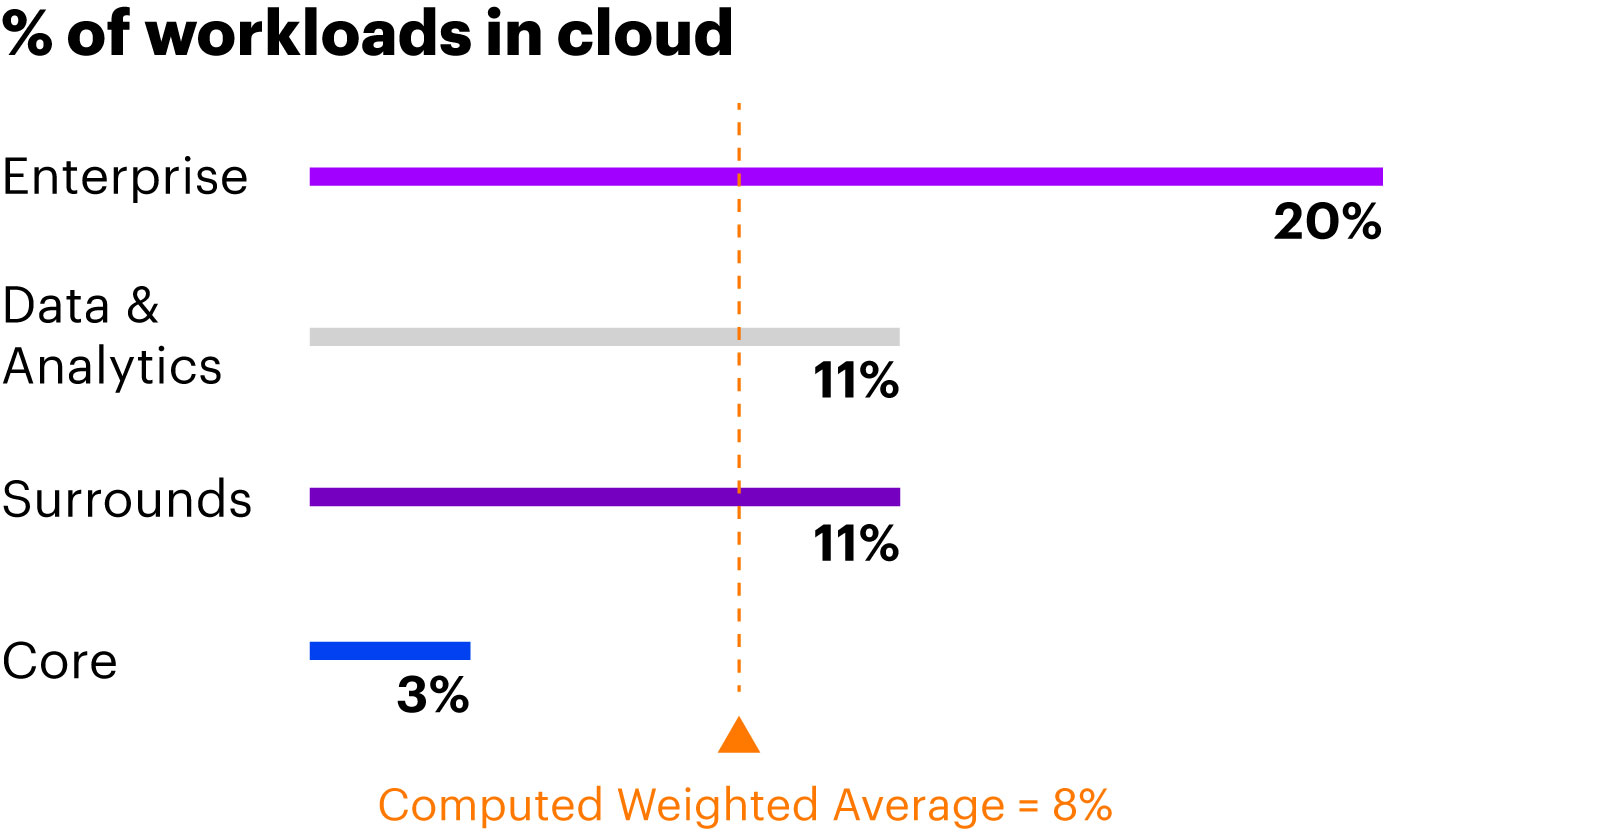 Enterprise functions have journeyed the farthest while data & analytics are catching up*